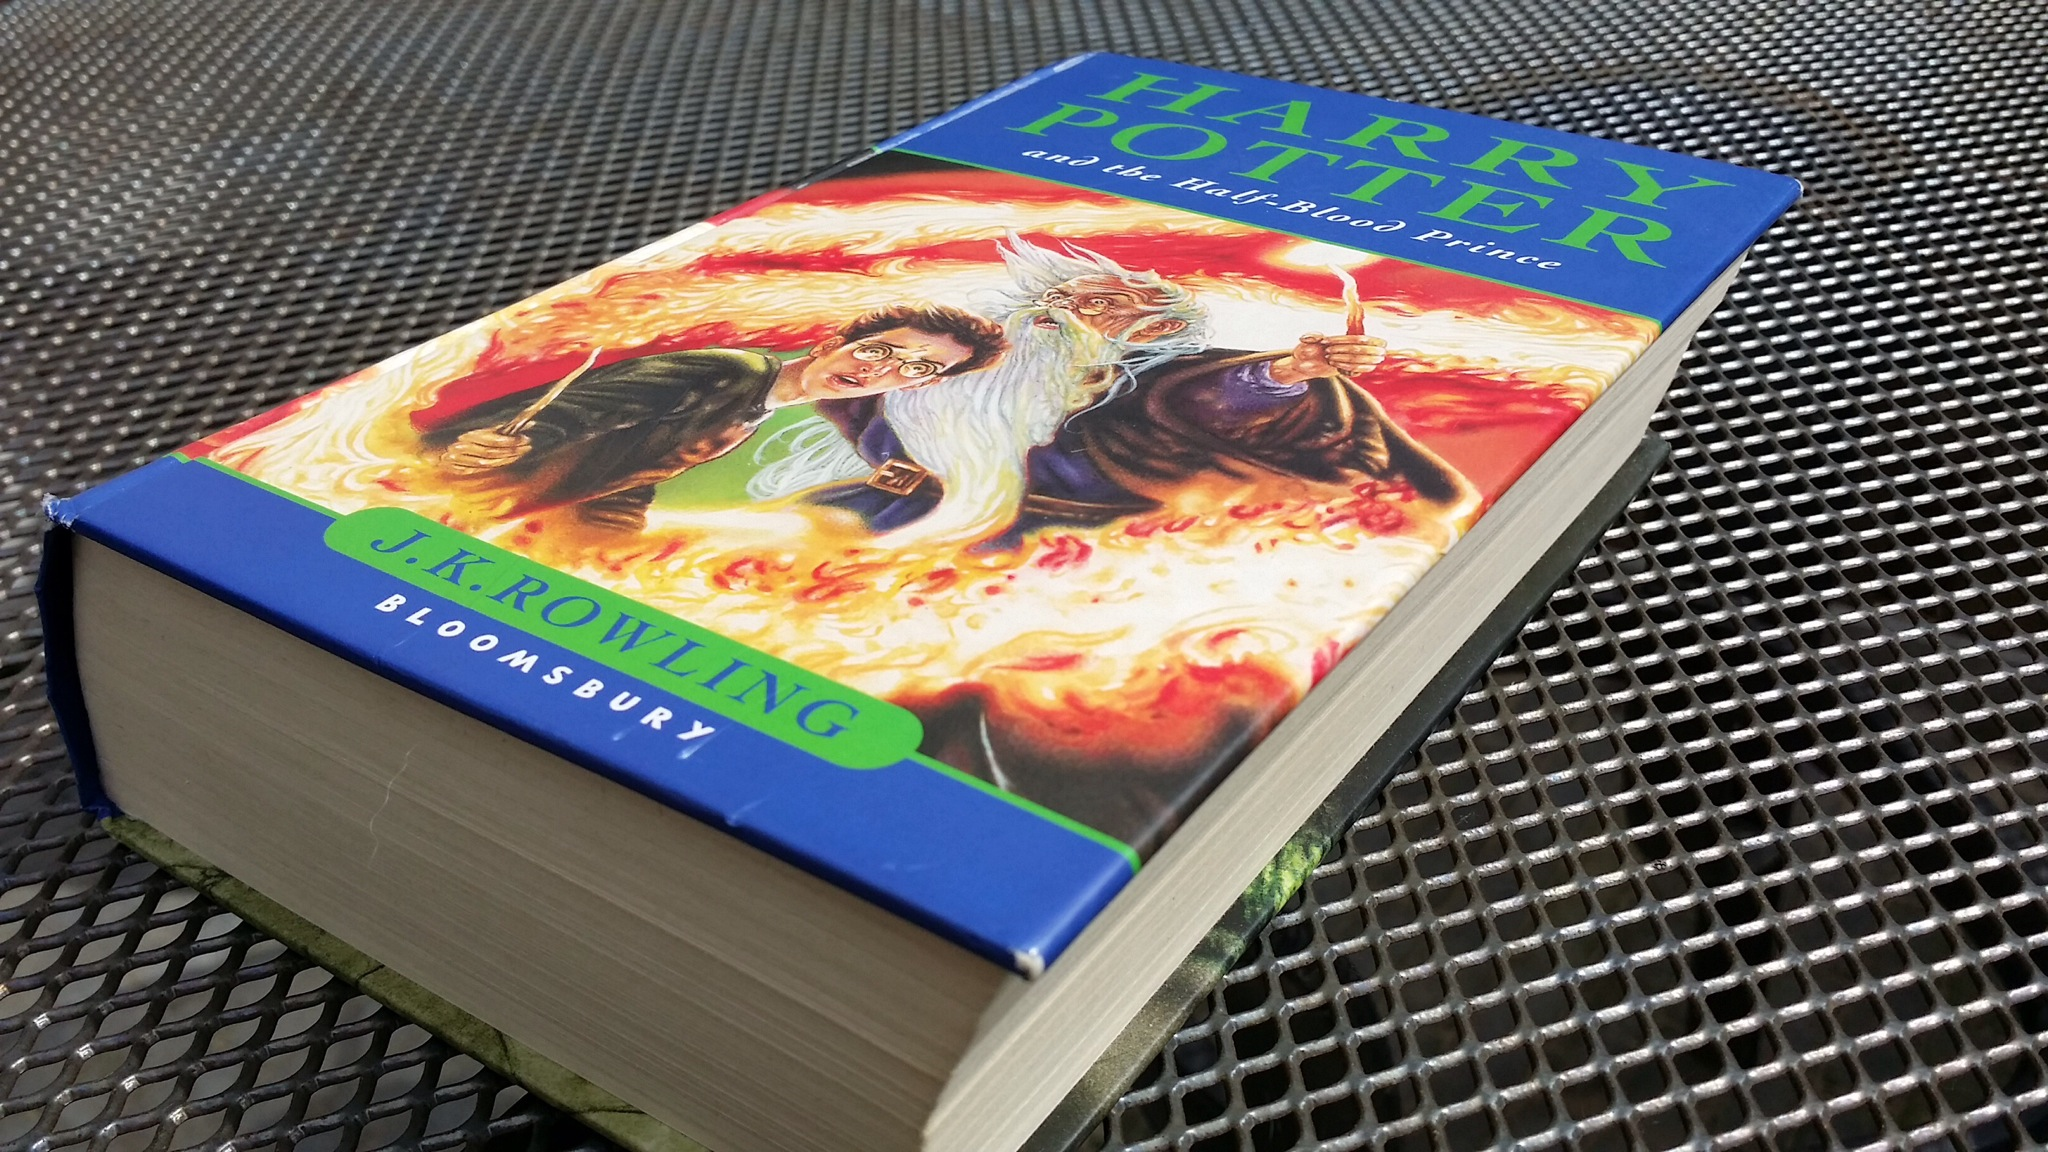 Book No. 6 - Harry Potter and the Half-Blood Prince | Book Review